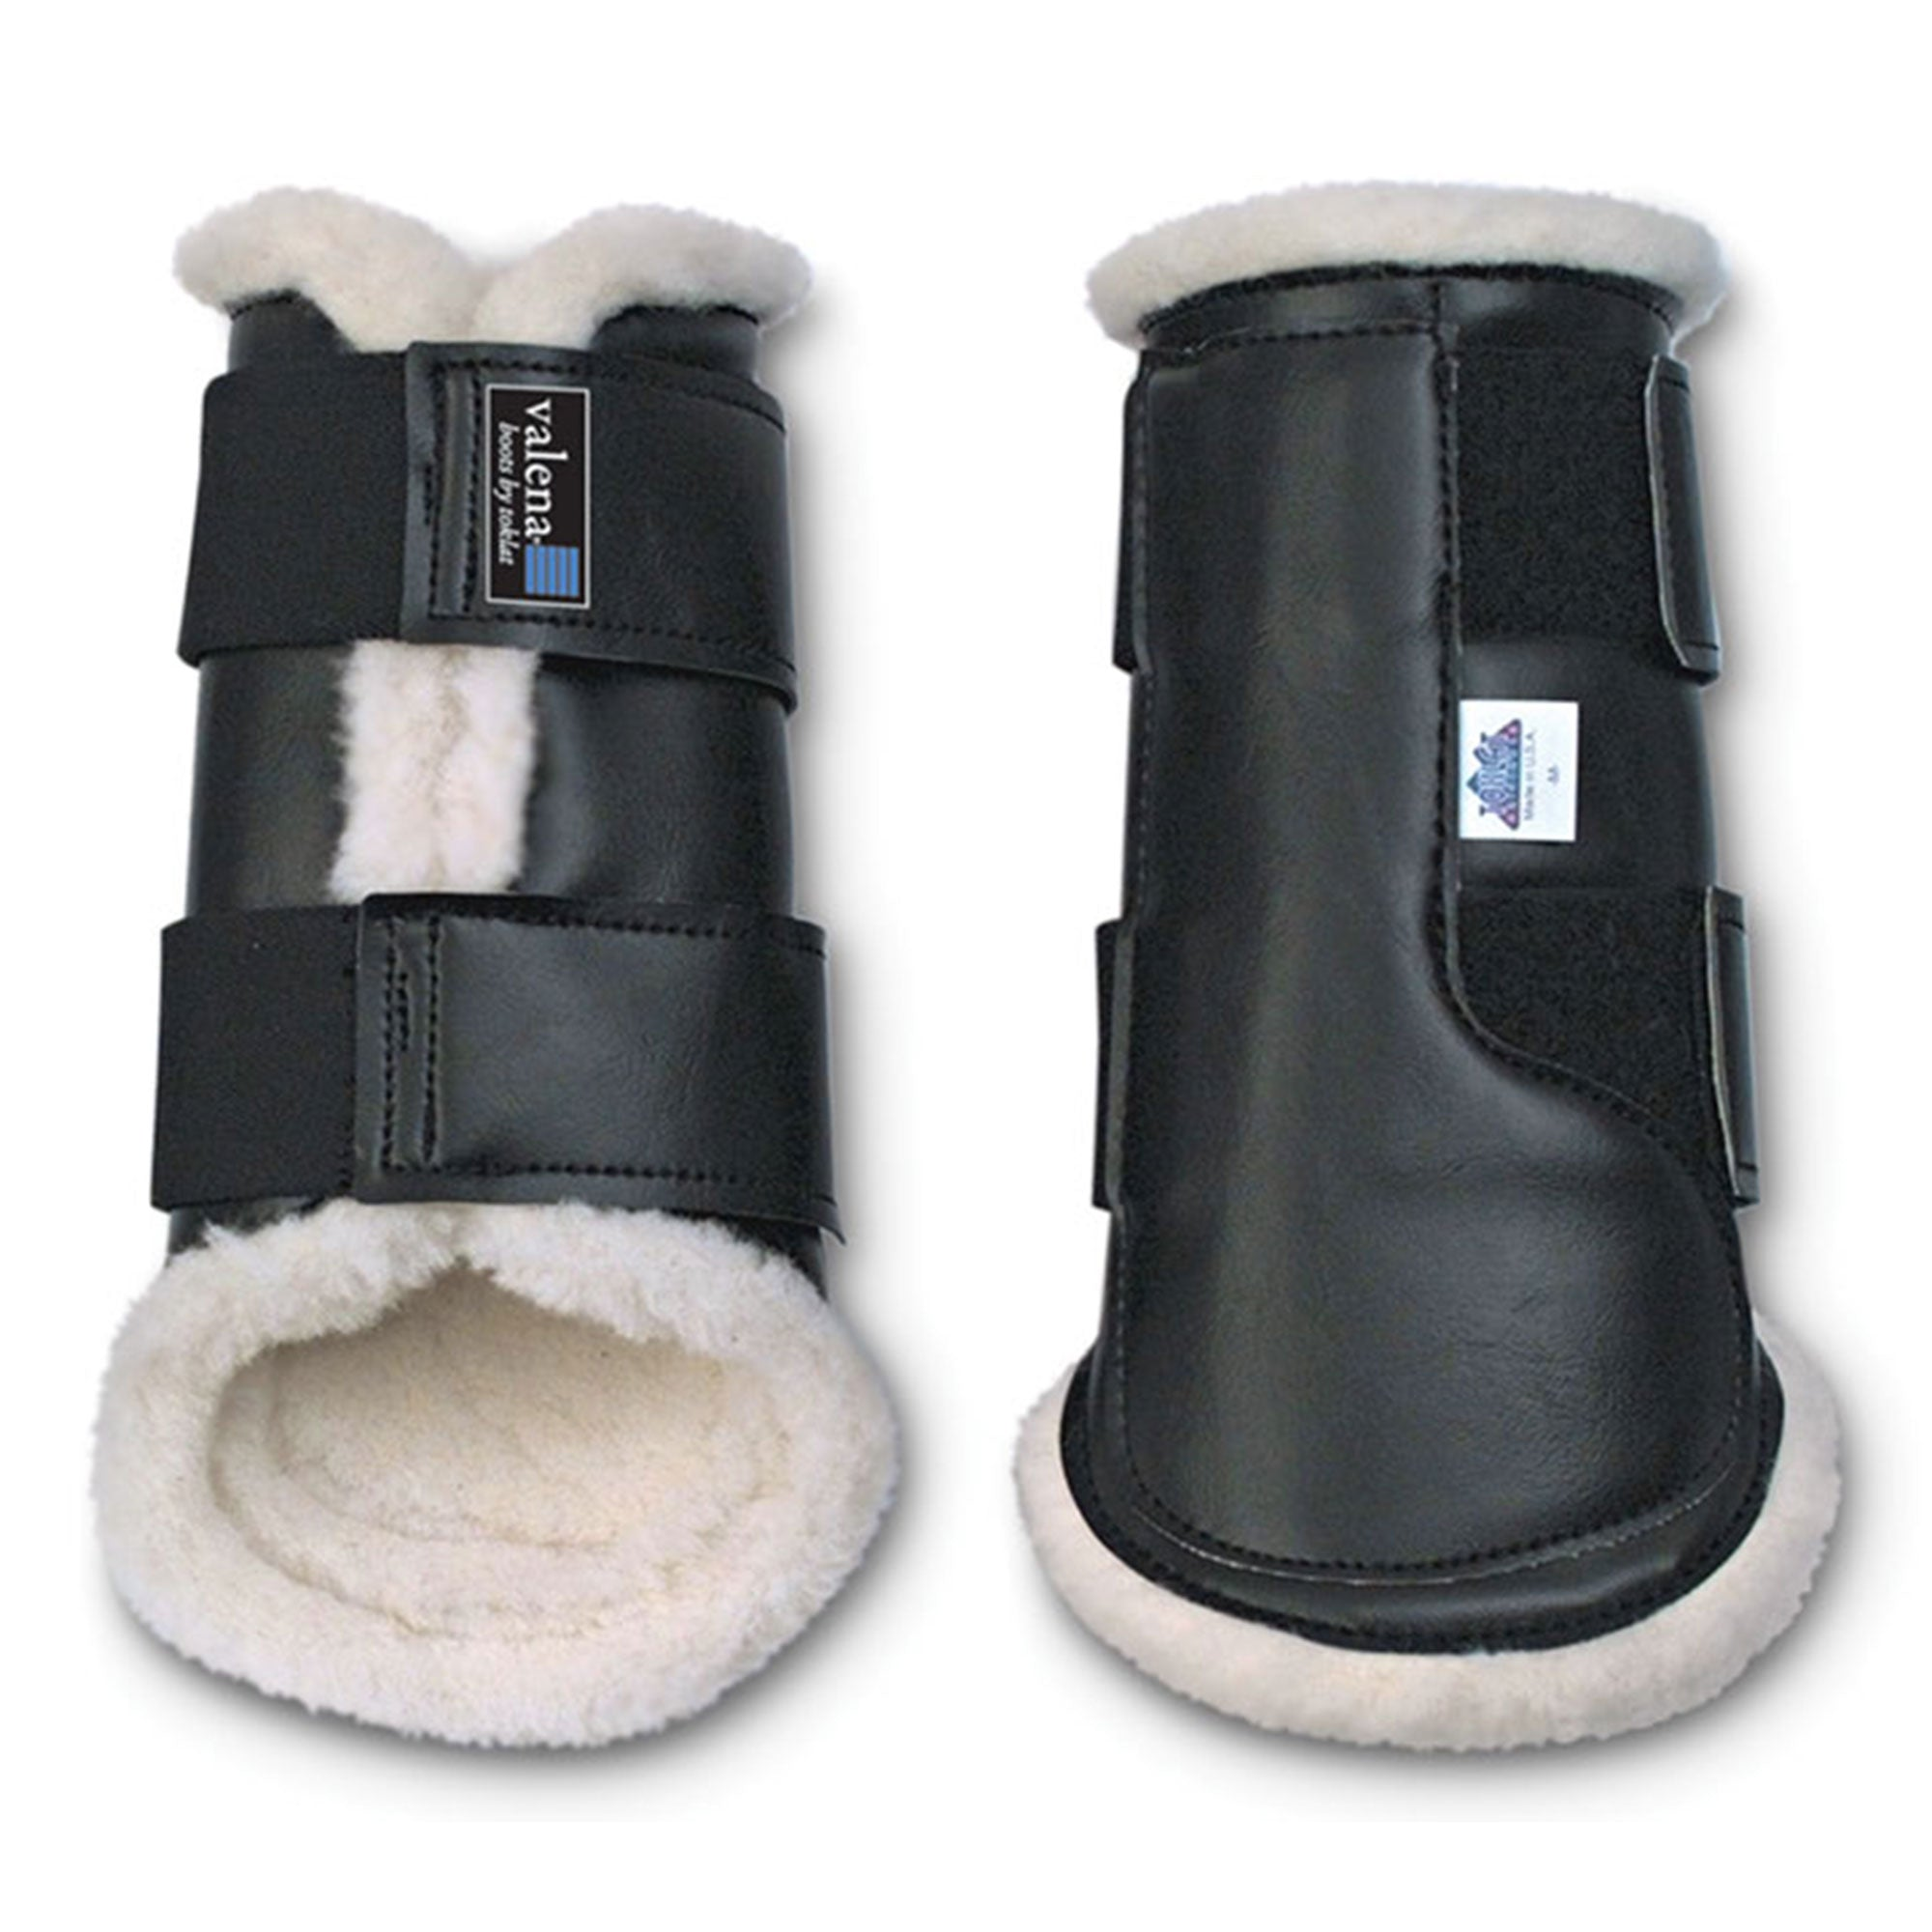 Valena Wool-Lined Protective Hind Boots - North Shore Saddlery